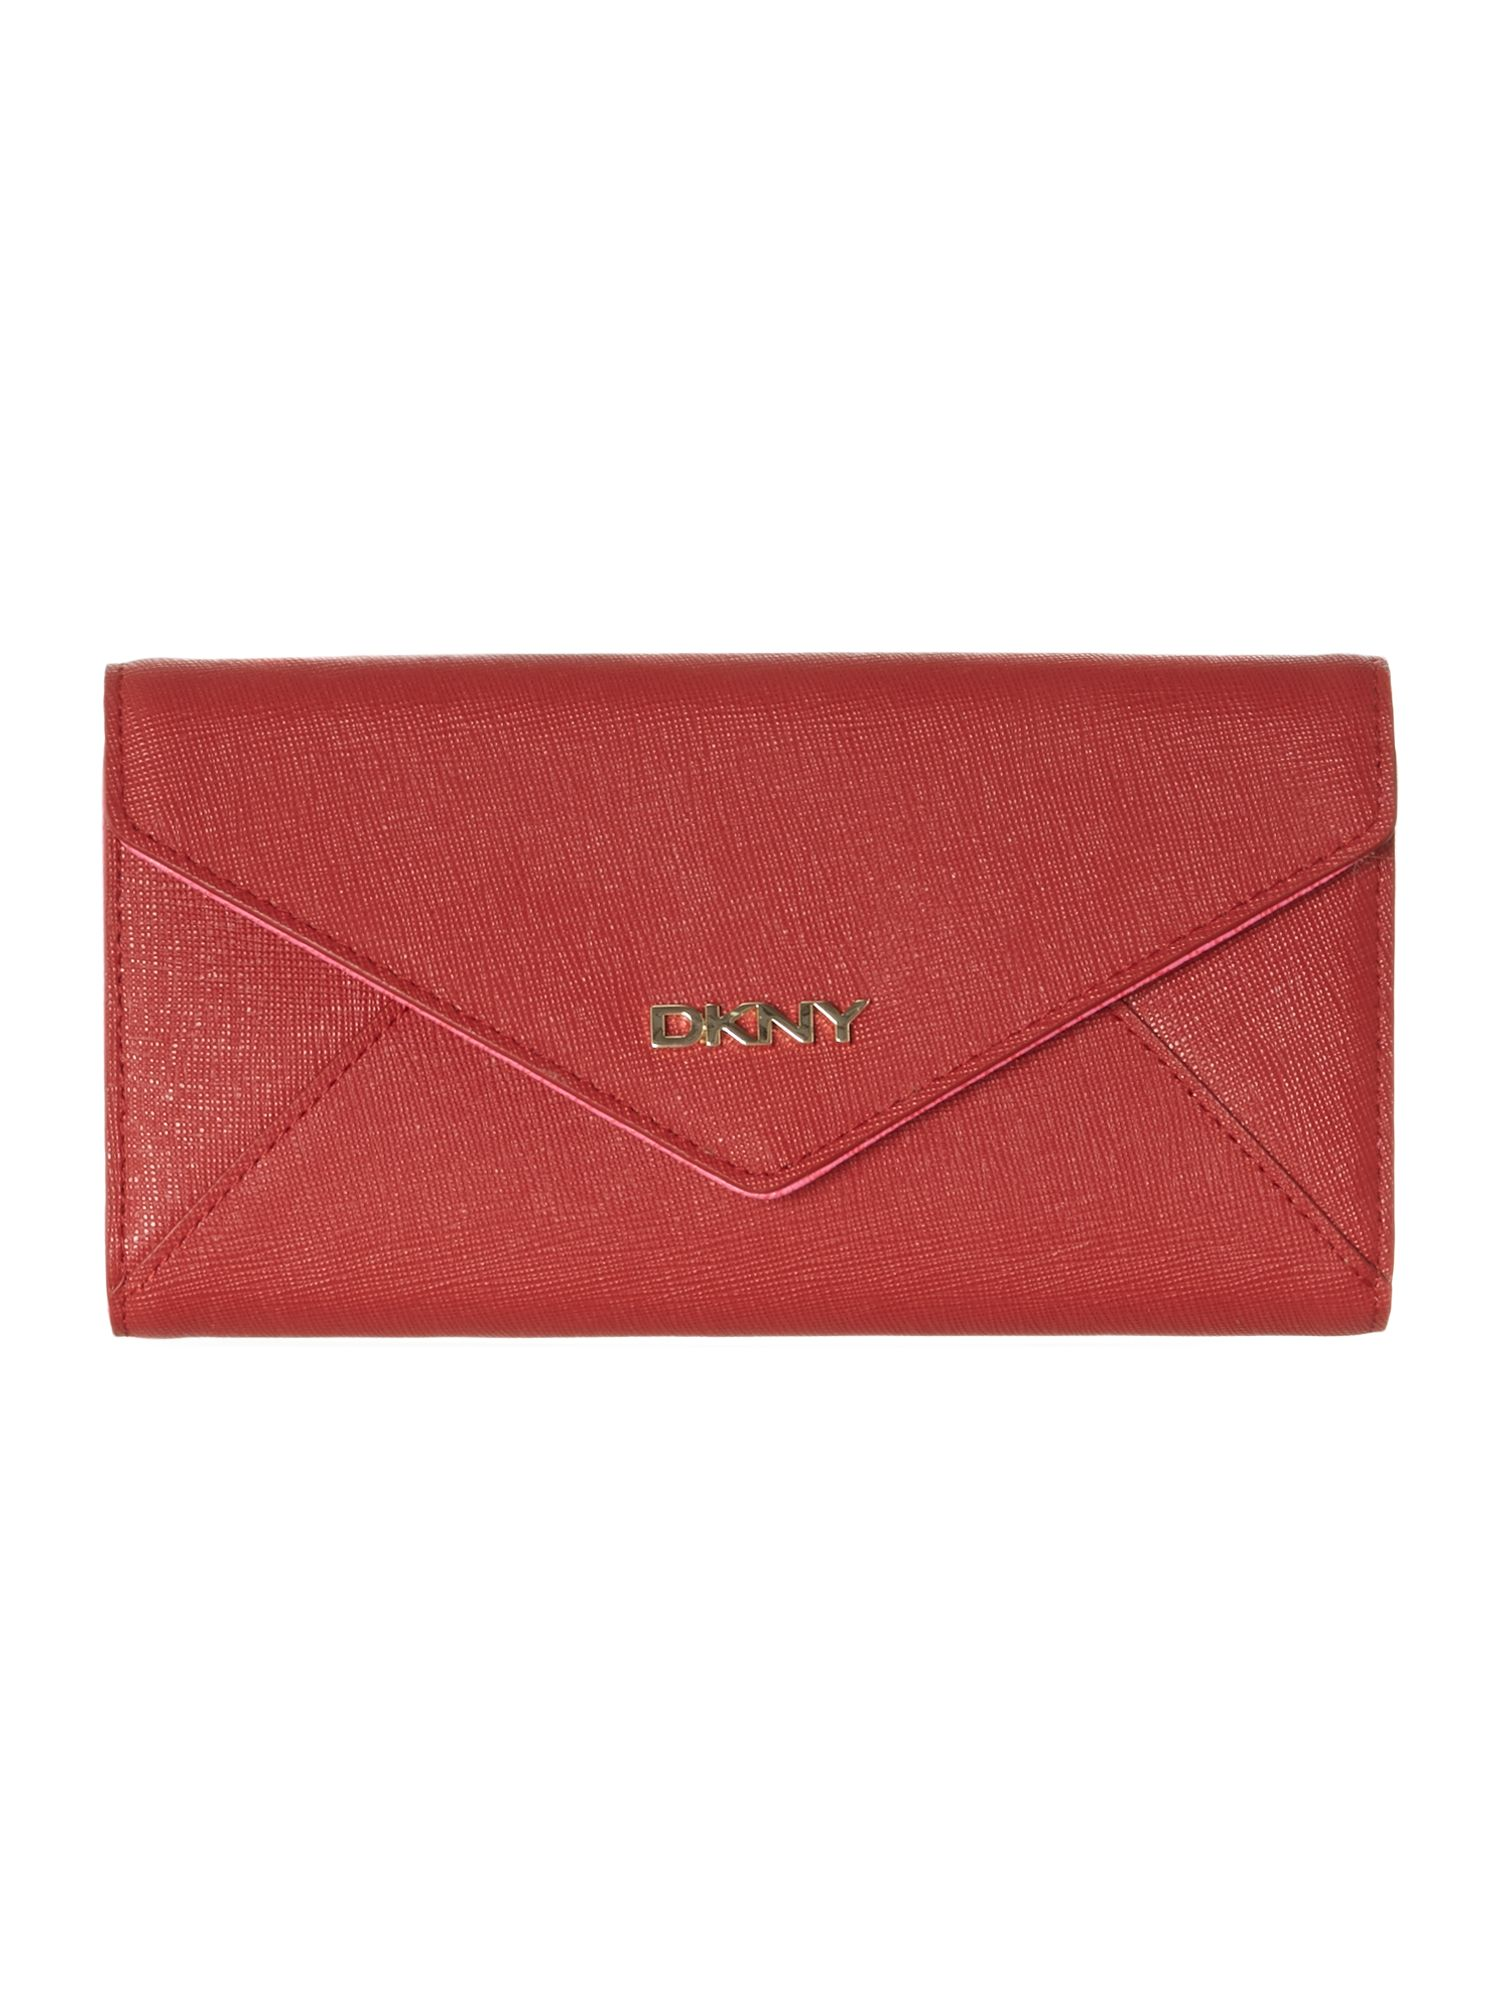 Saffiano red large envelope flapover